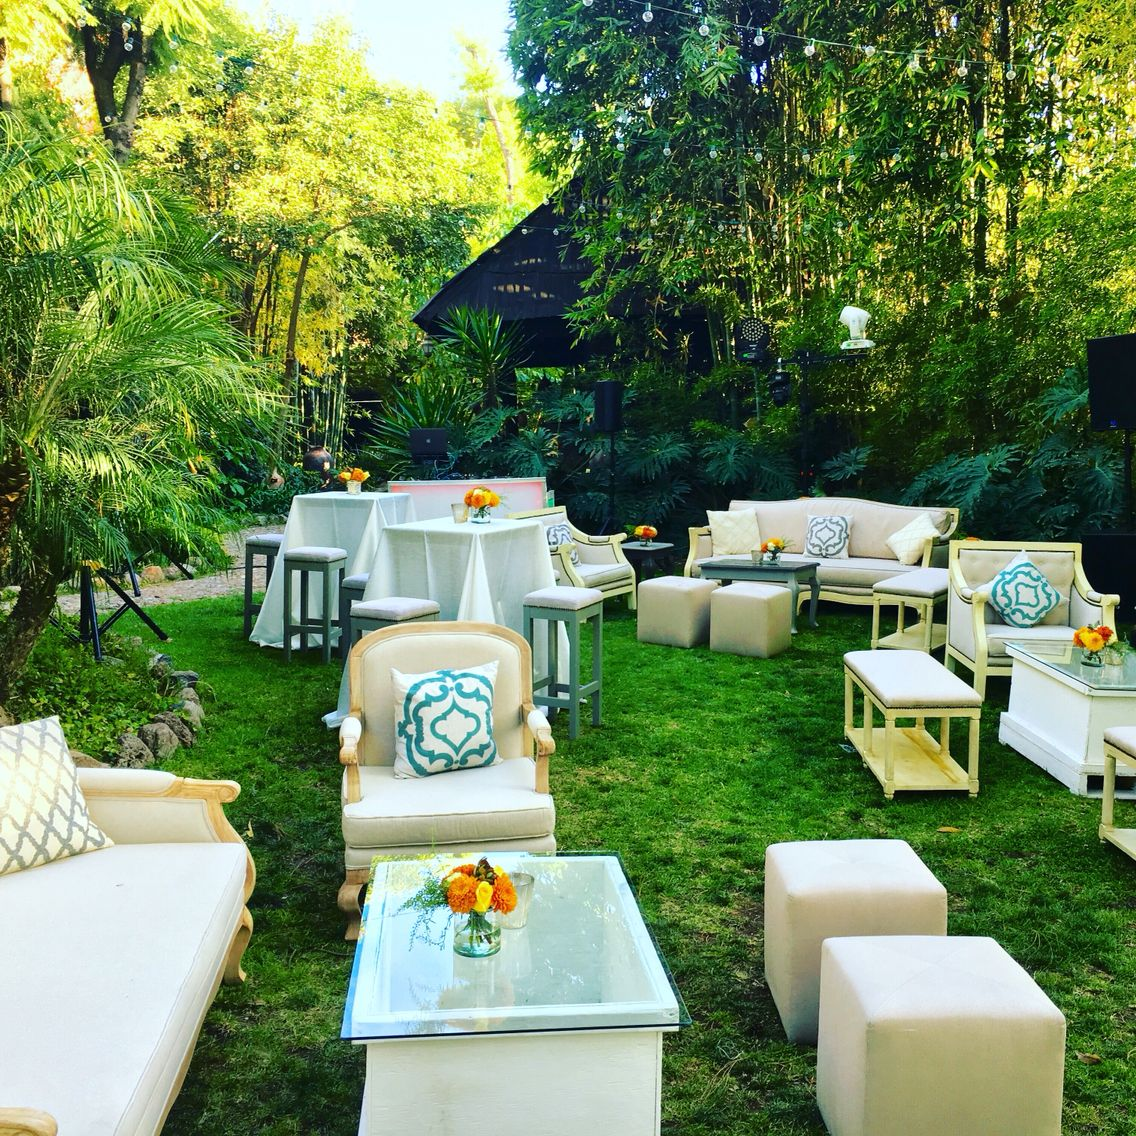 Garden party. Lounge furniture welcome party @SanMigueldeAllende